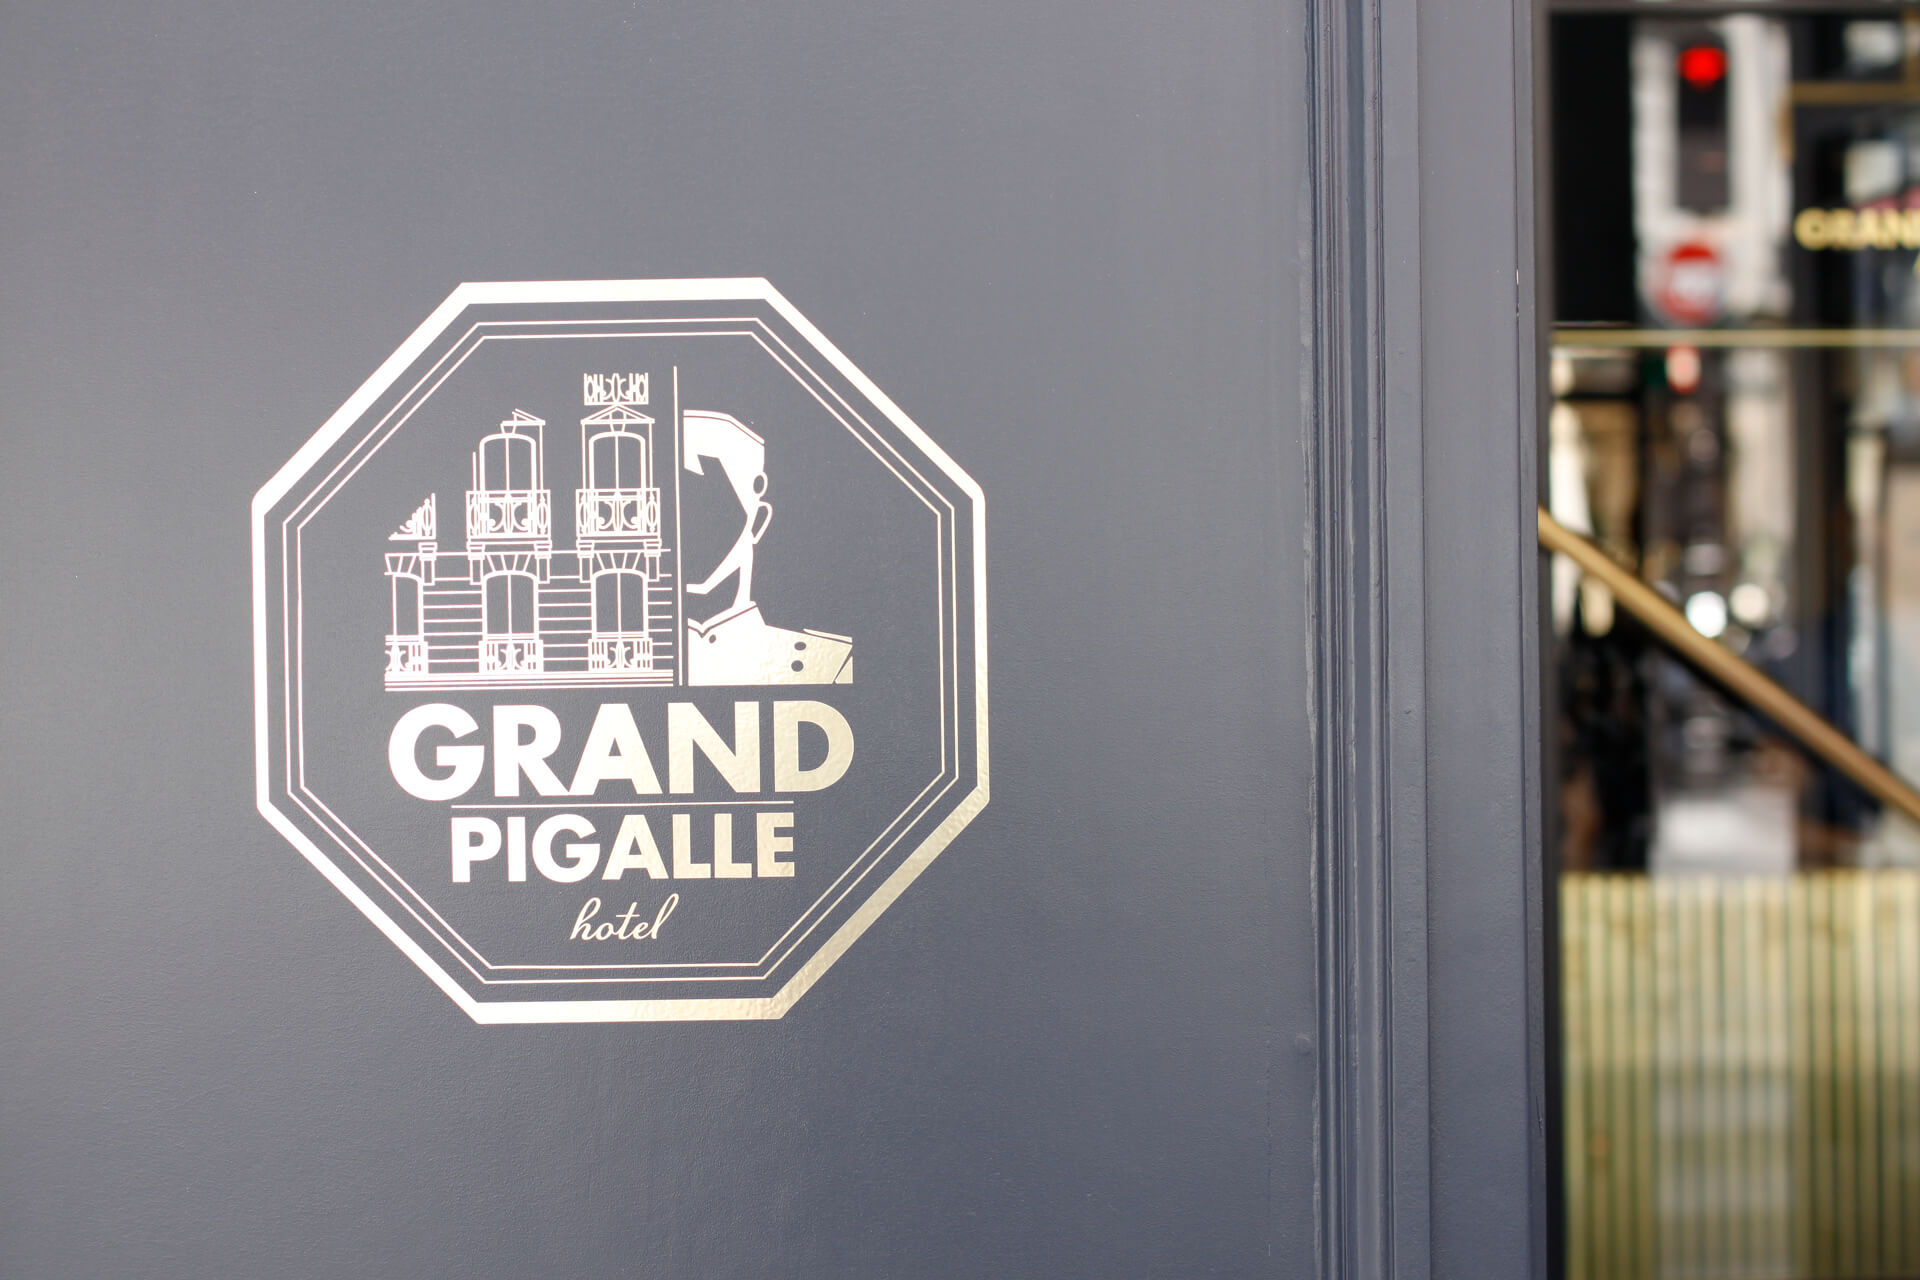 grand pigalle hotel paris logo